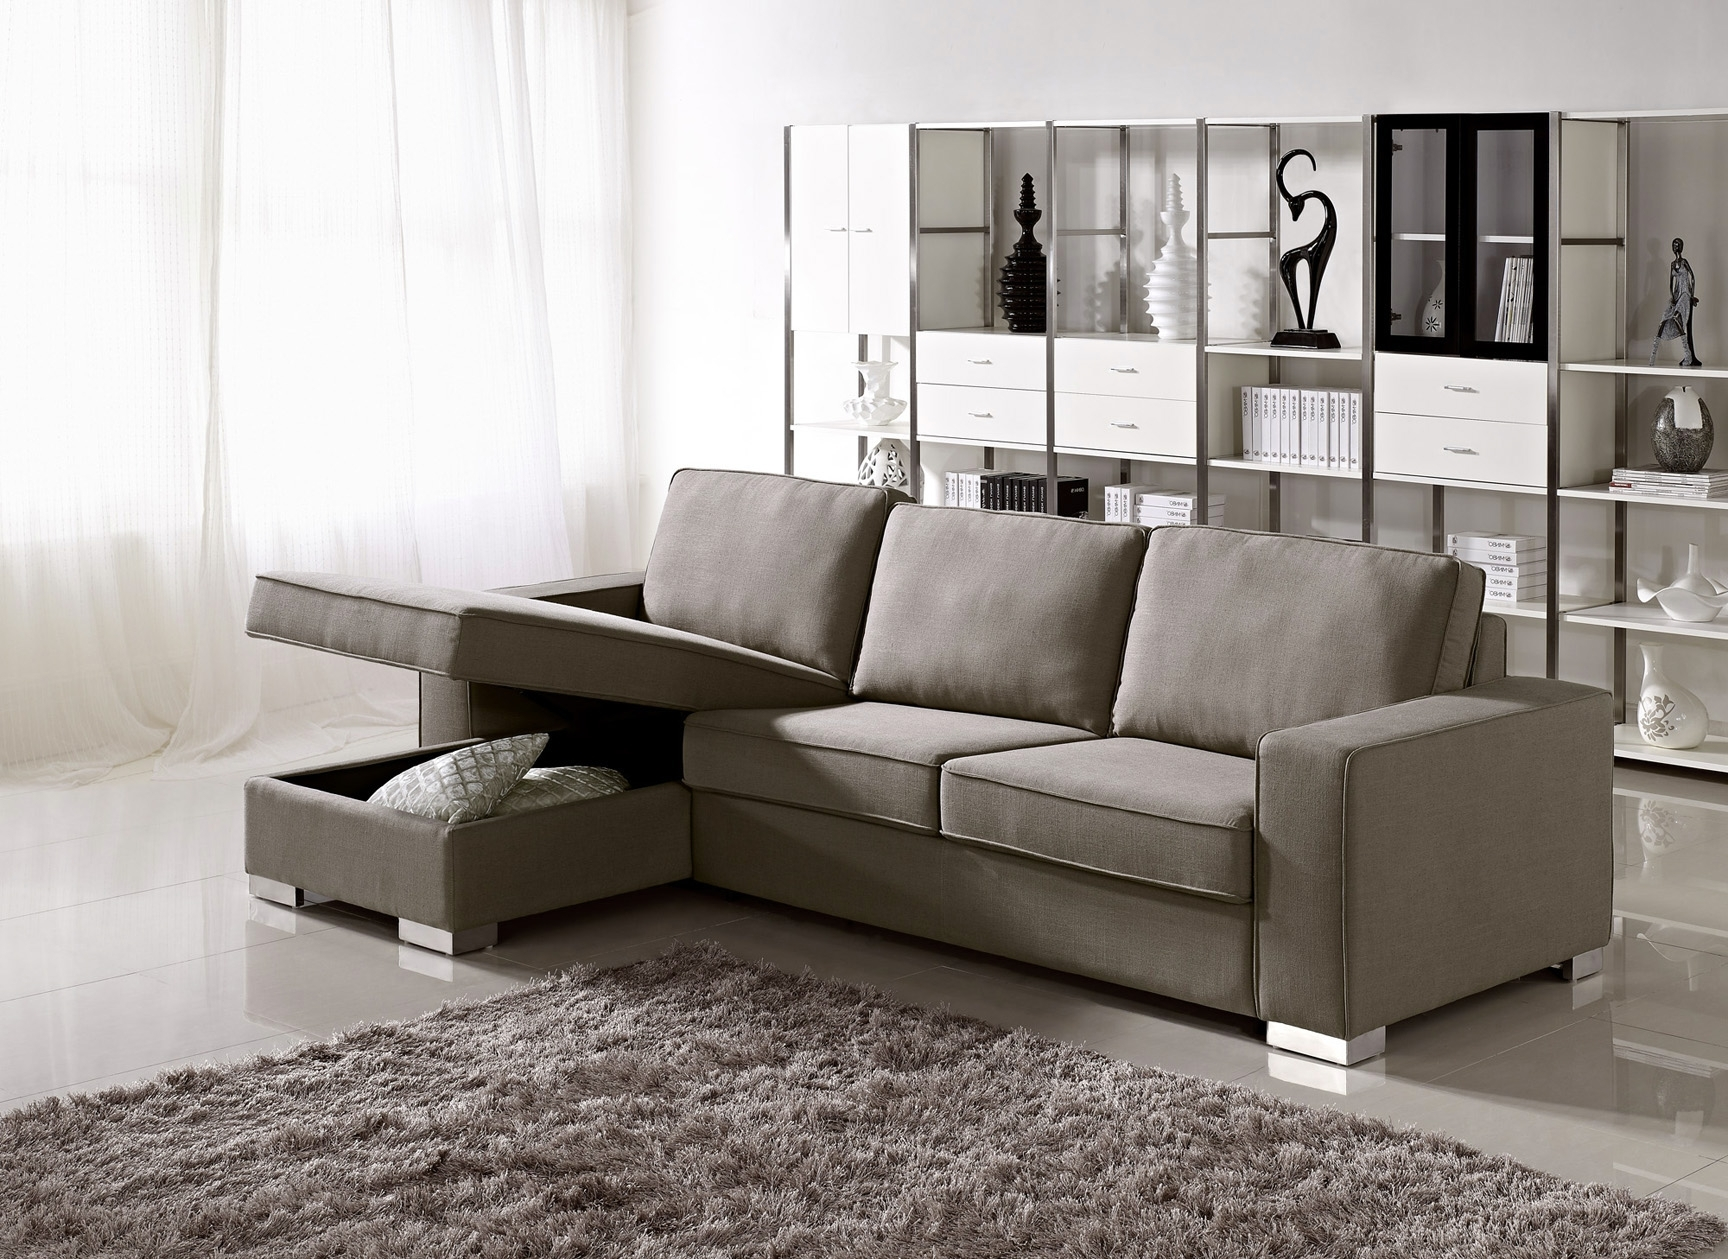 Well Liked Greenville Nc Sectional Sofas Within Furniture : Most Comfortable Stylish Couches For Living Room Ideas (View 20 of 20)